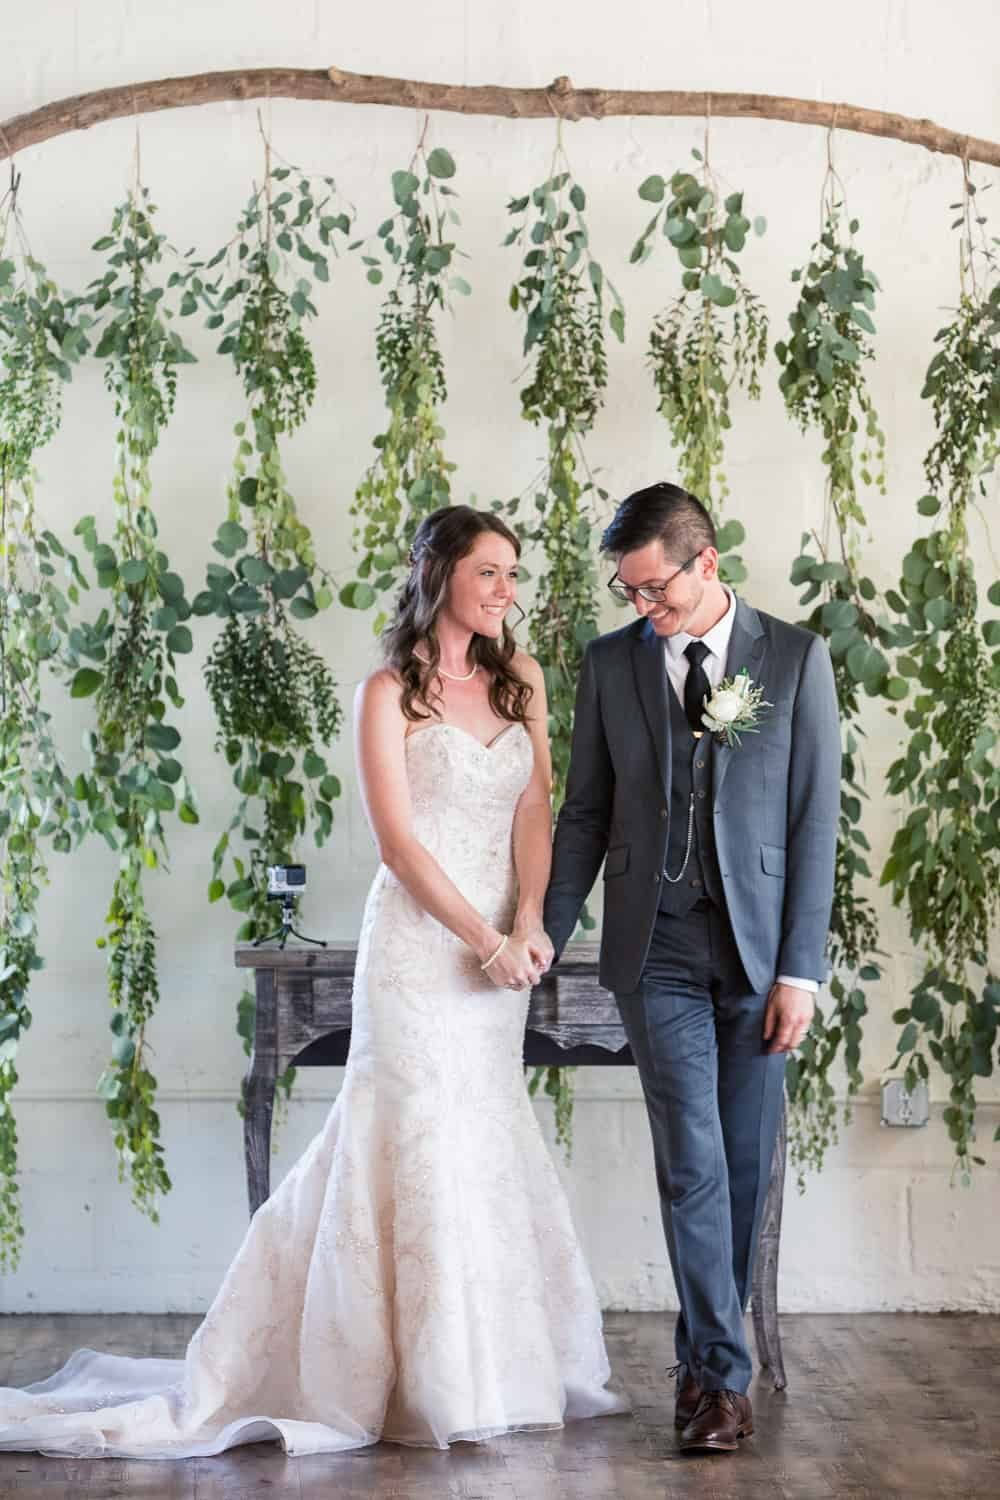 as they walk down the wedding aisle, there are hanging leaves behind them. it is beautiful.